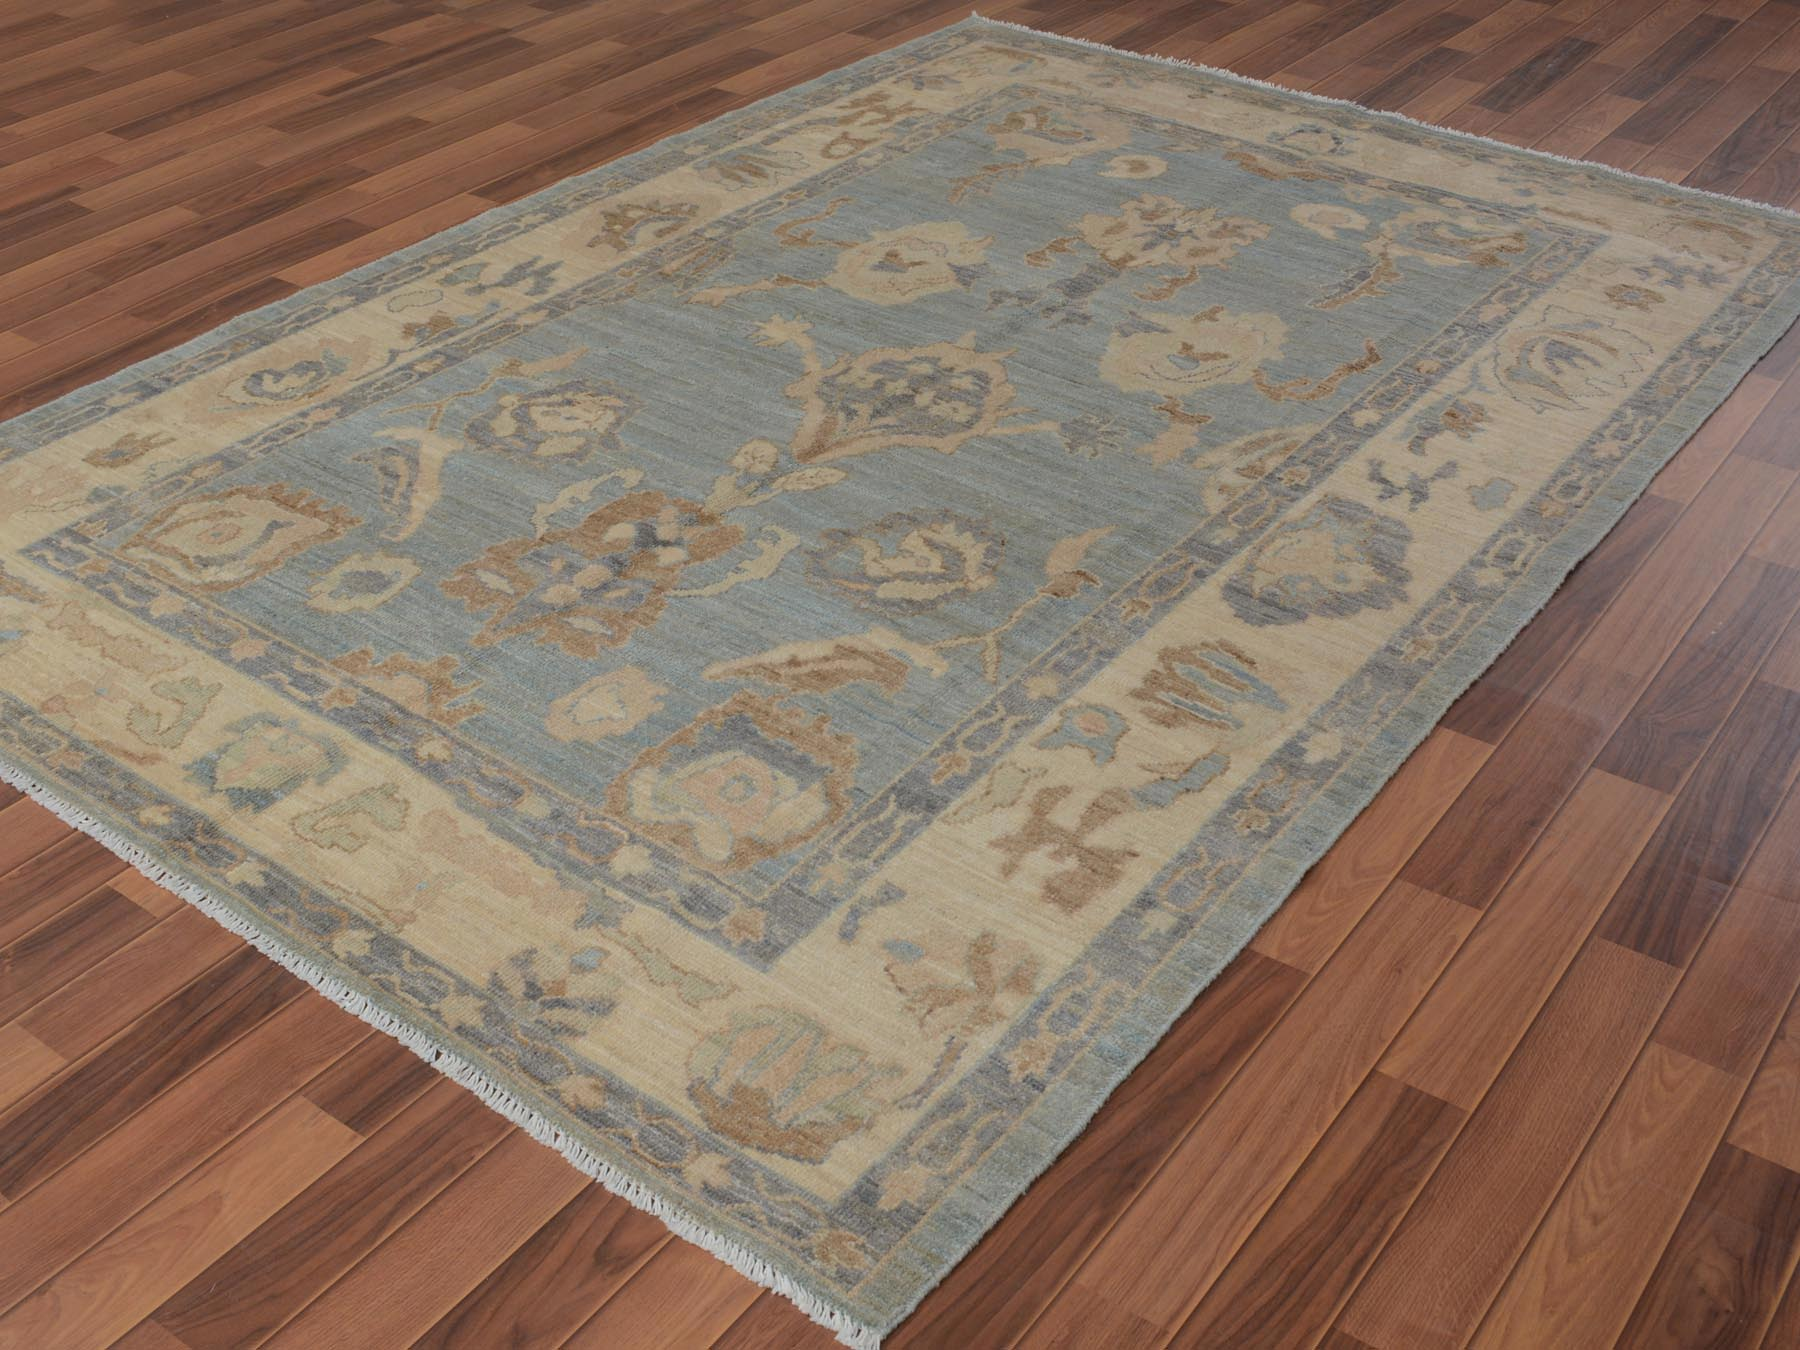 Transitional Wool Hand-Knotted Area Rug 6'2